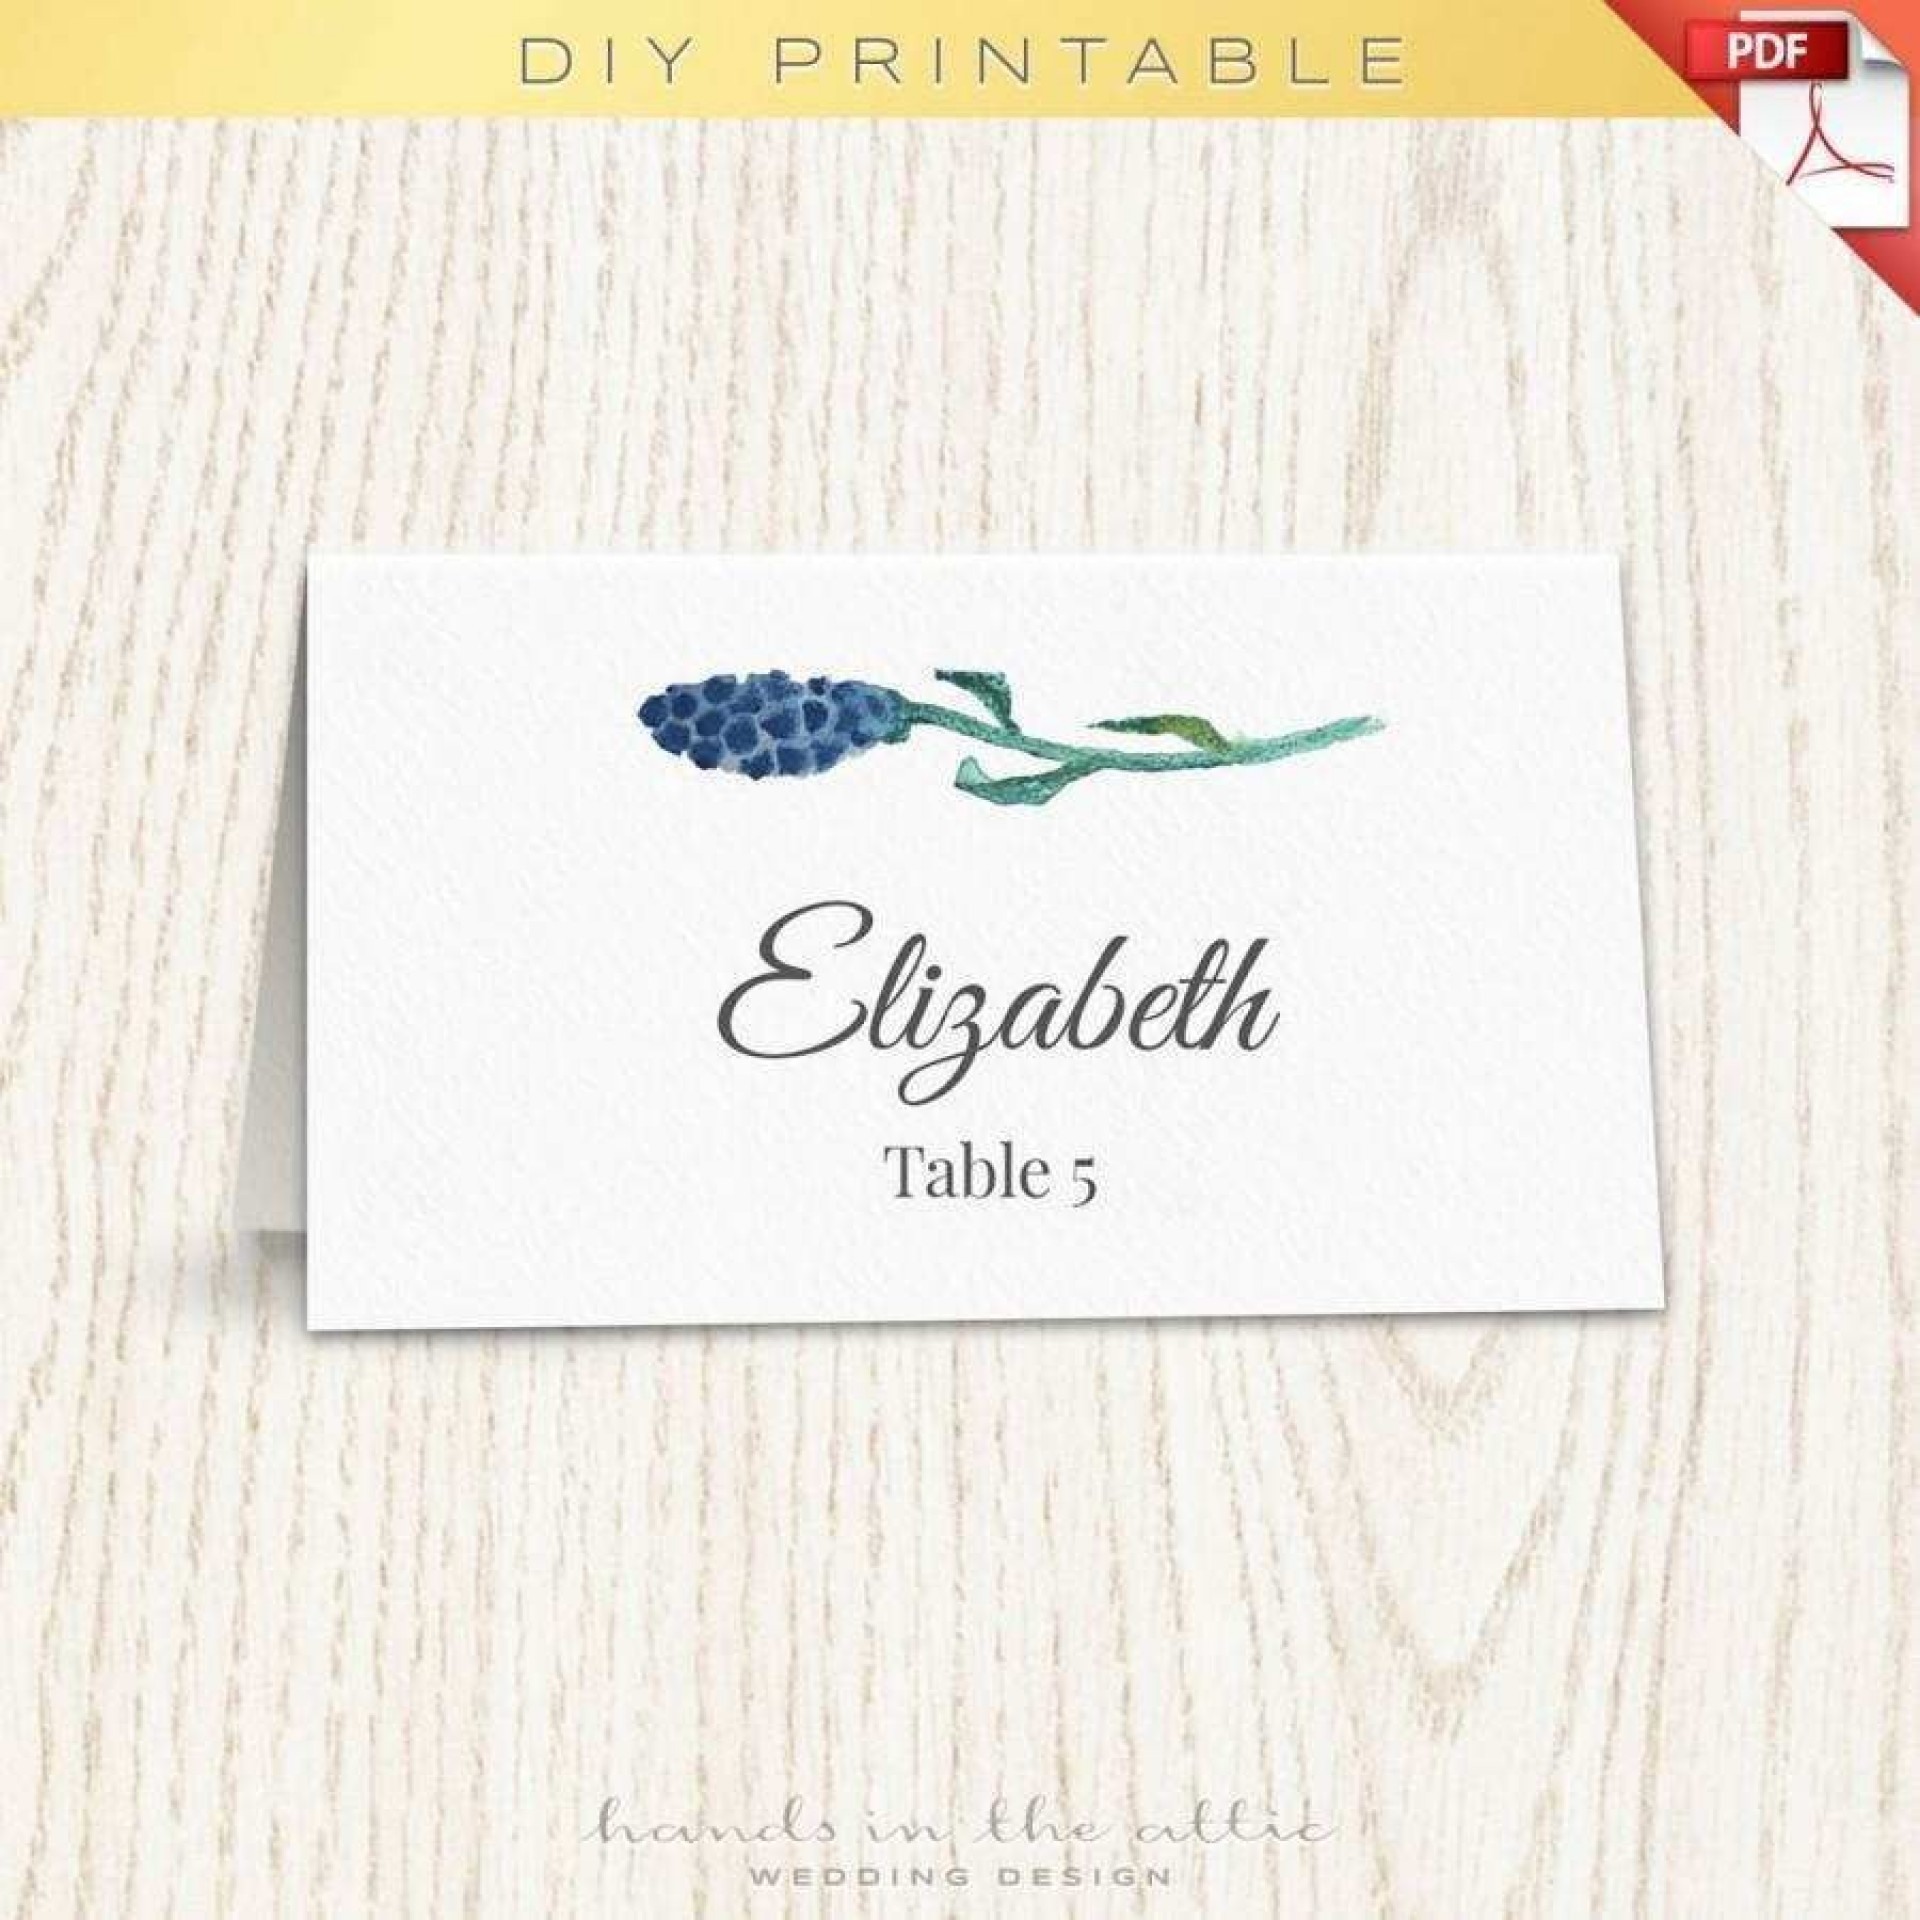 001 Singular Wedding Name Card Template Idea  Seating Chart Place Free1920